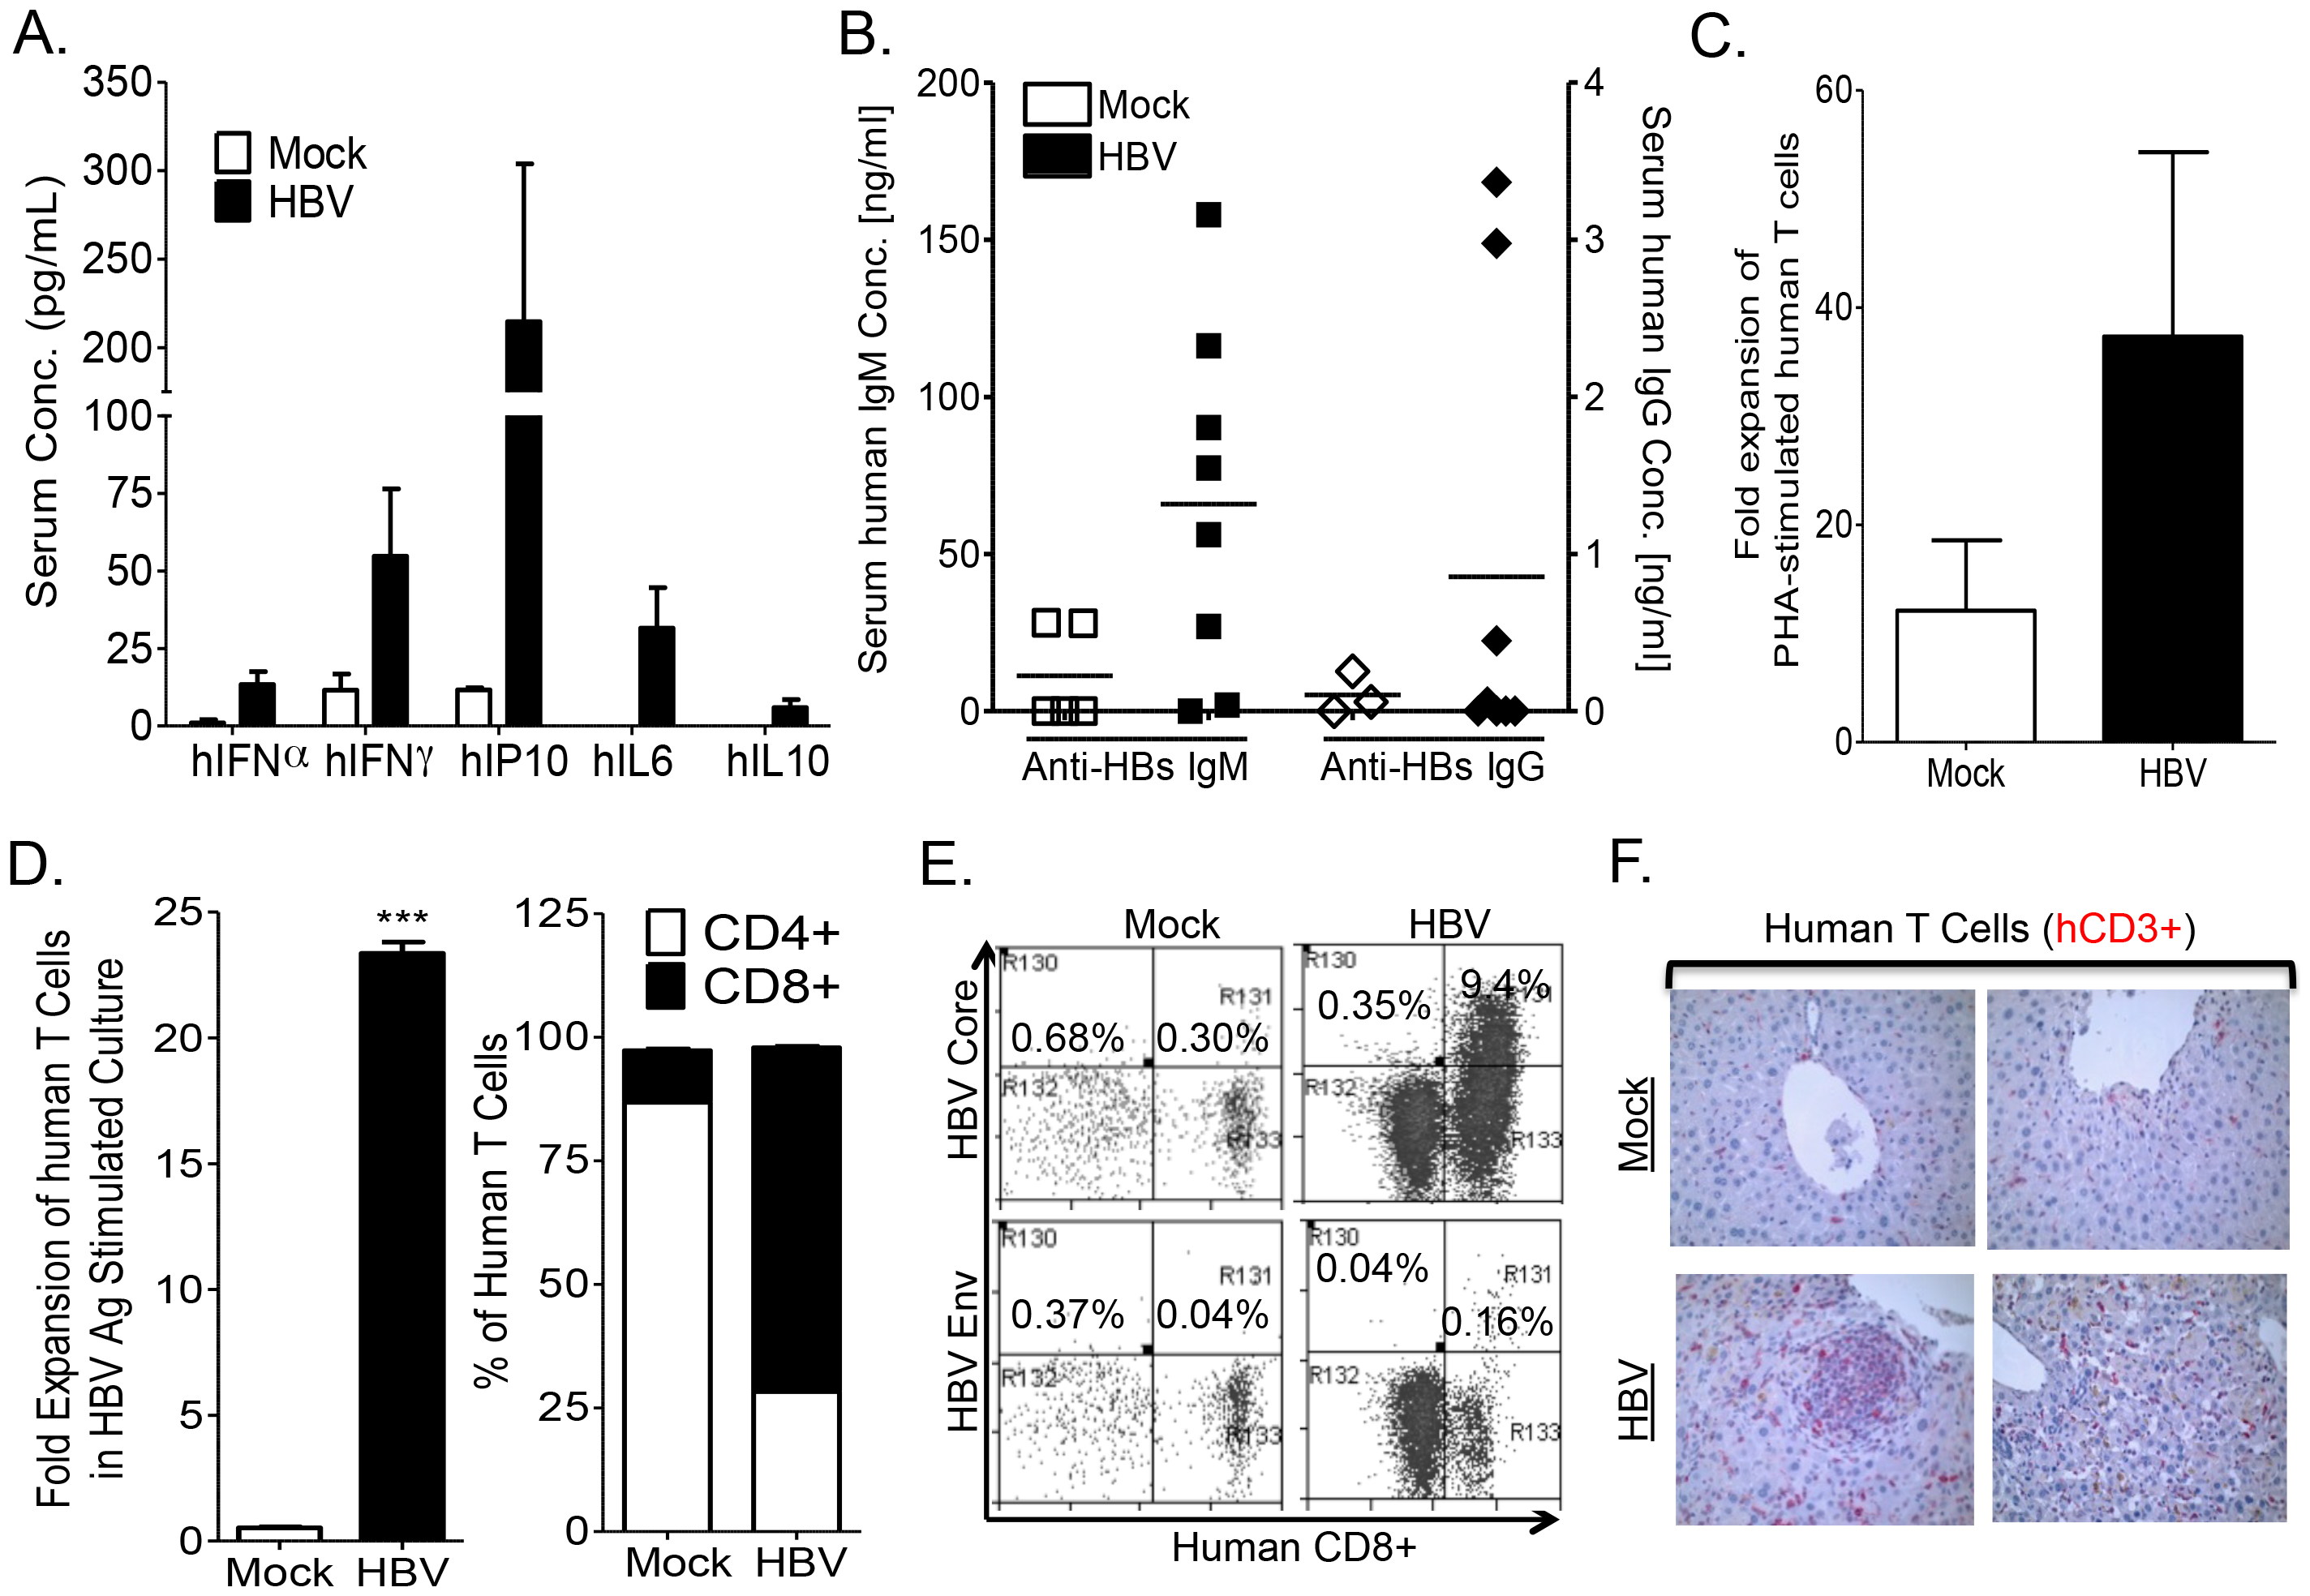 HBV infection induces anti-HBV human immune response in A2/NSG/Fas-hu mice.